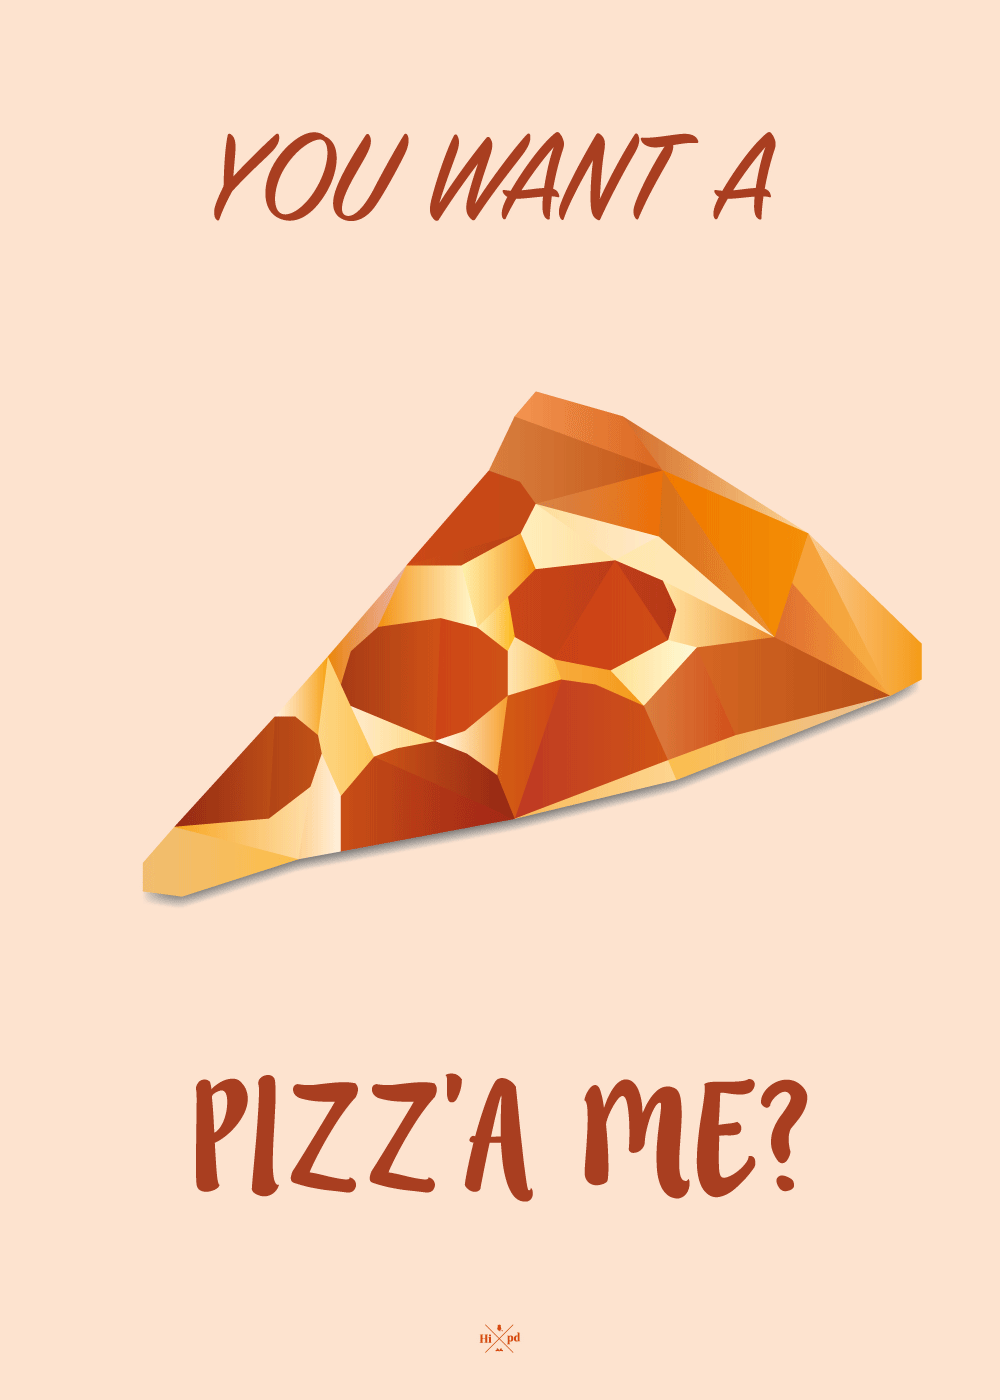 You want a pizza me